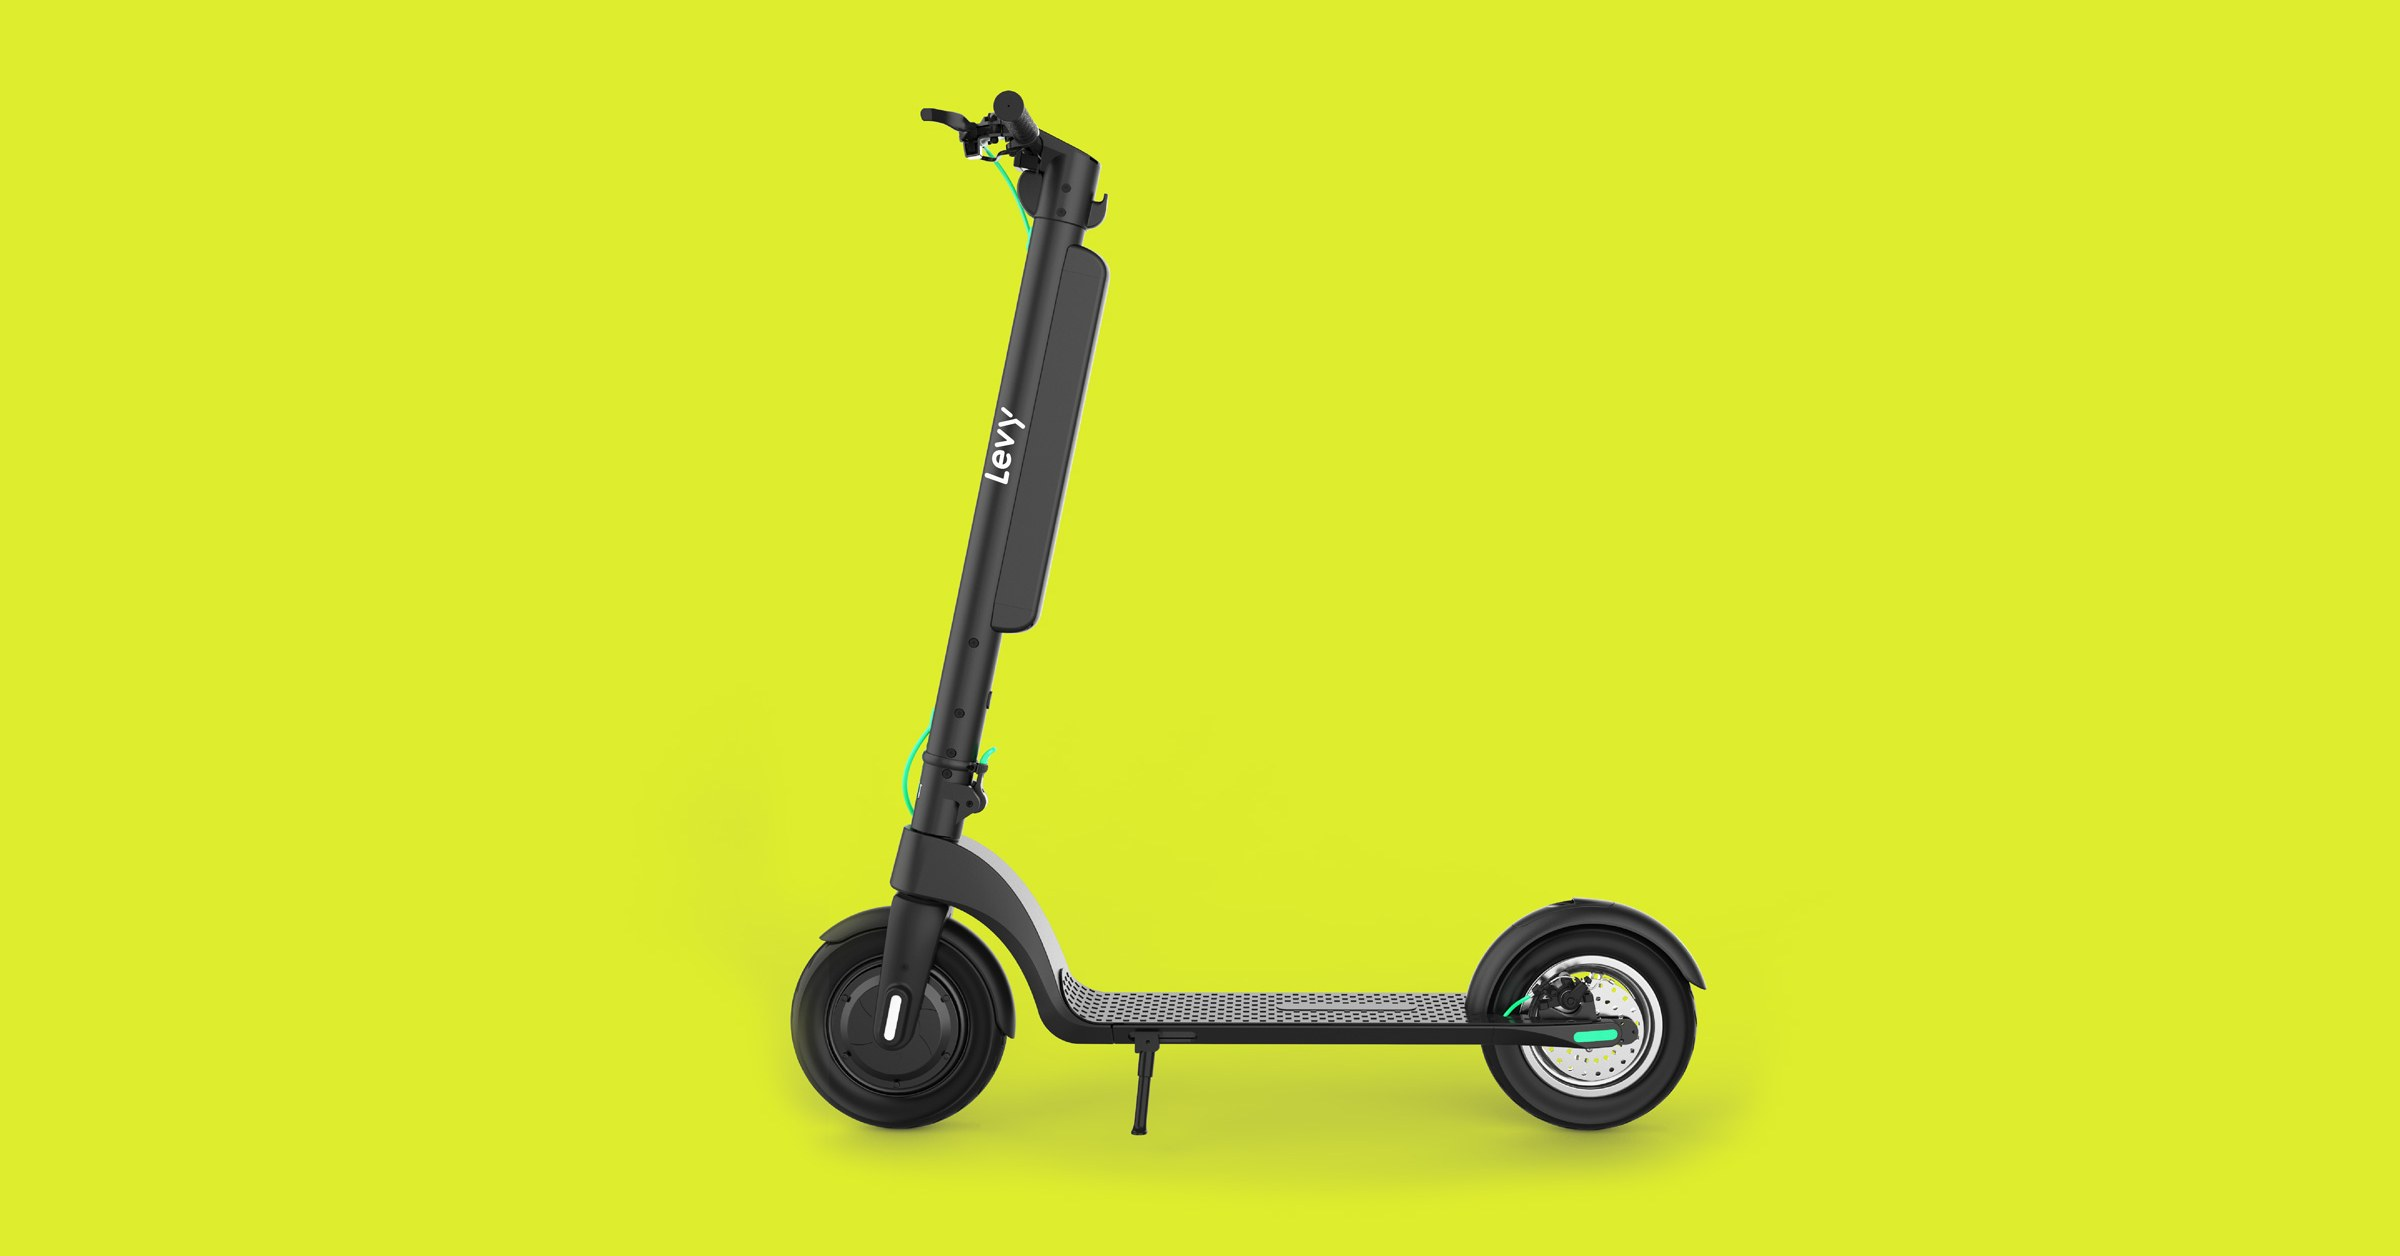 Levy Plus Review: A Comfy, Affordable Electric Scooter